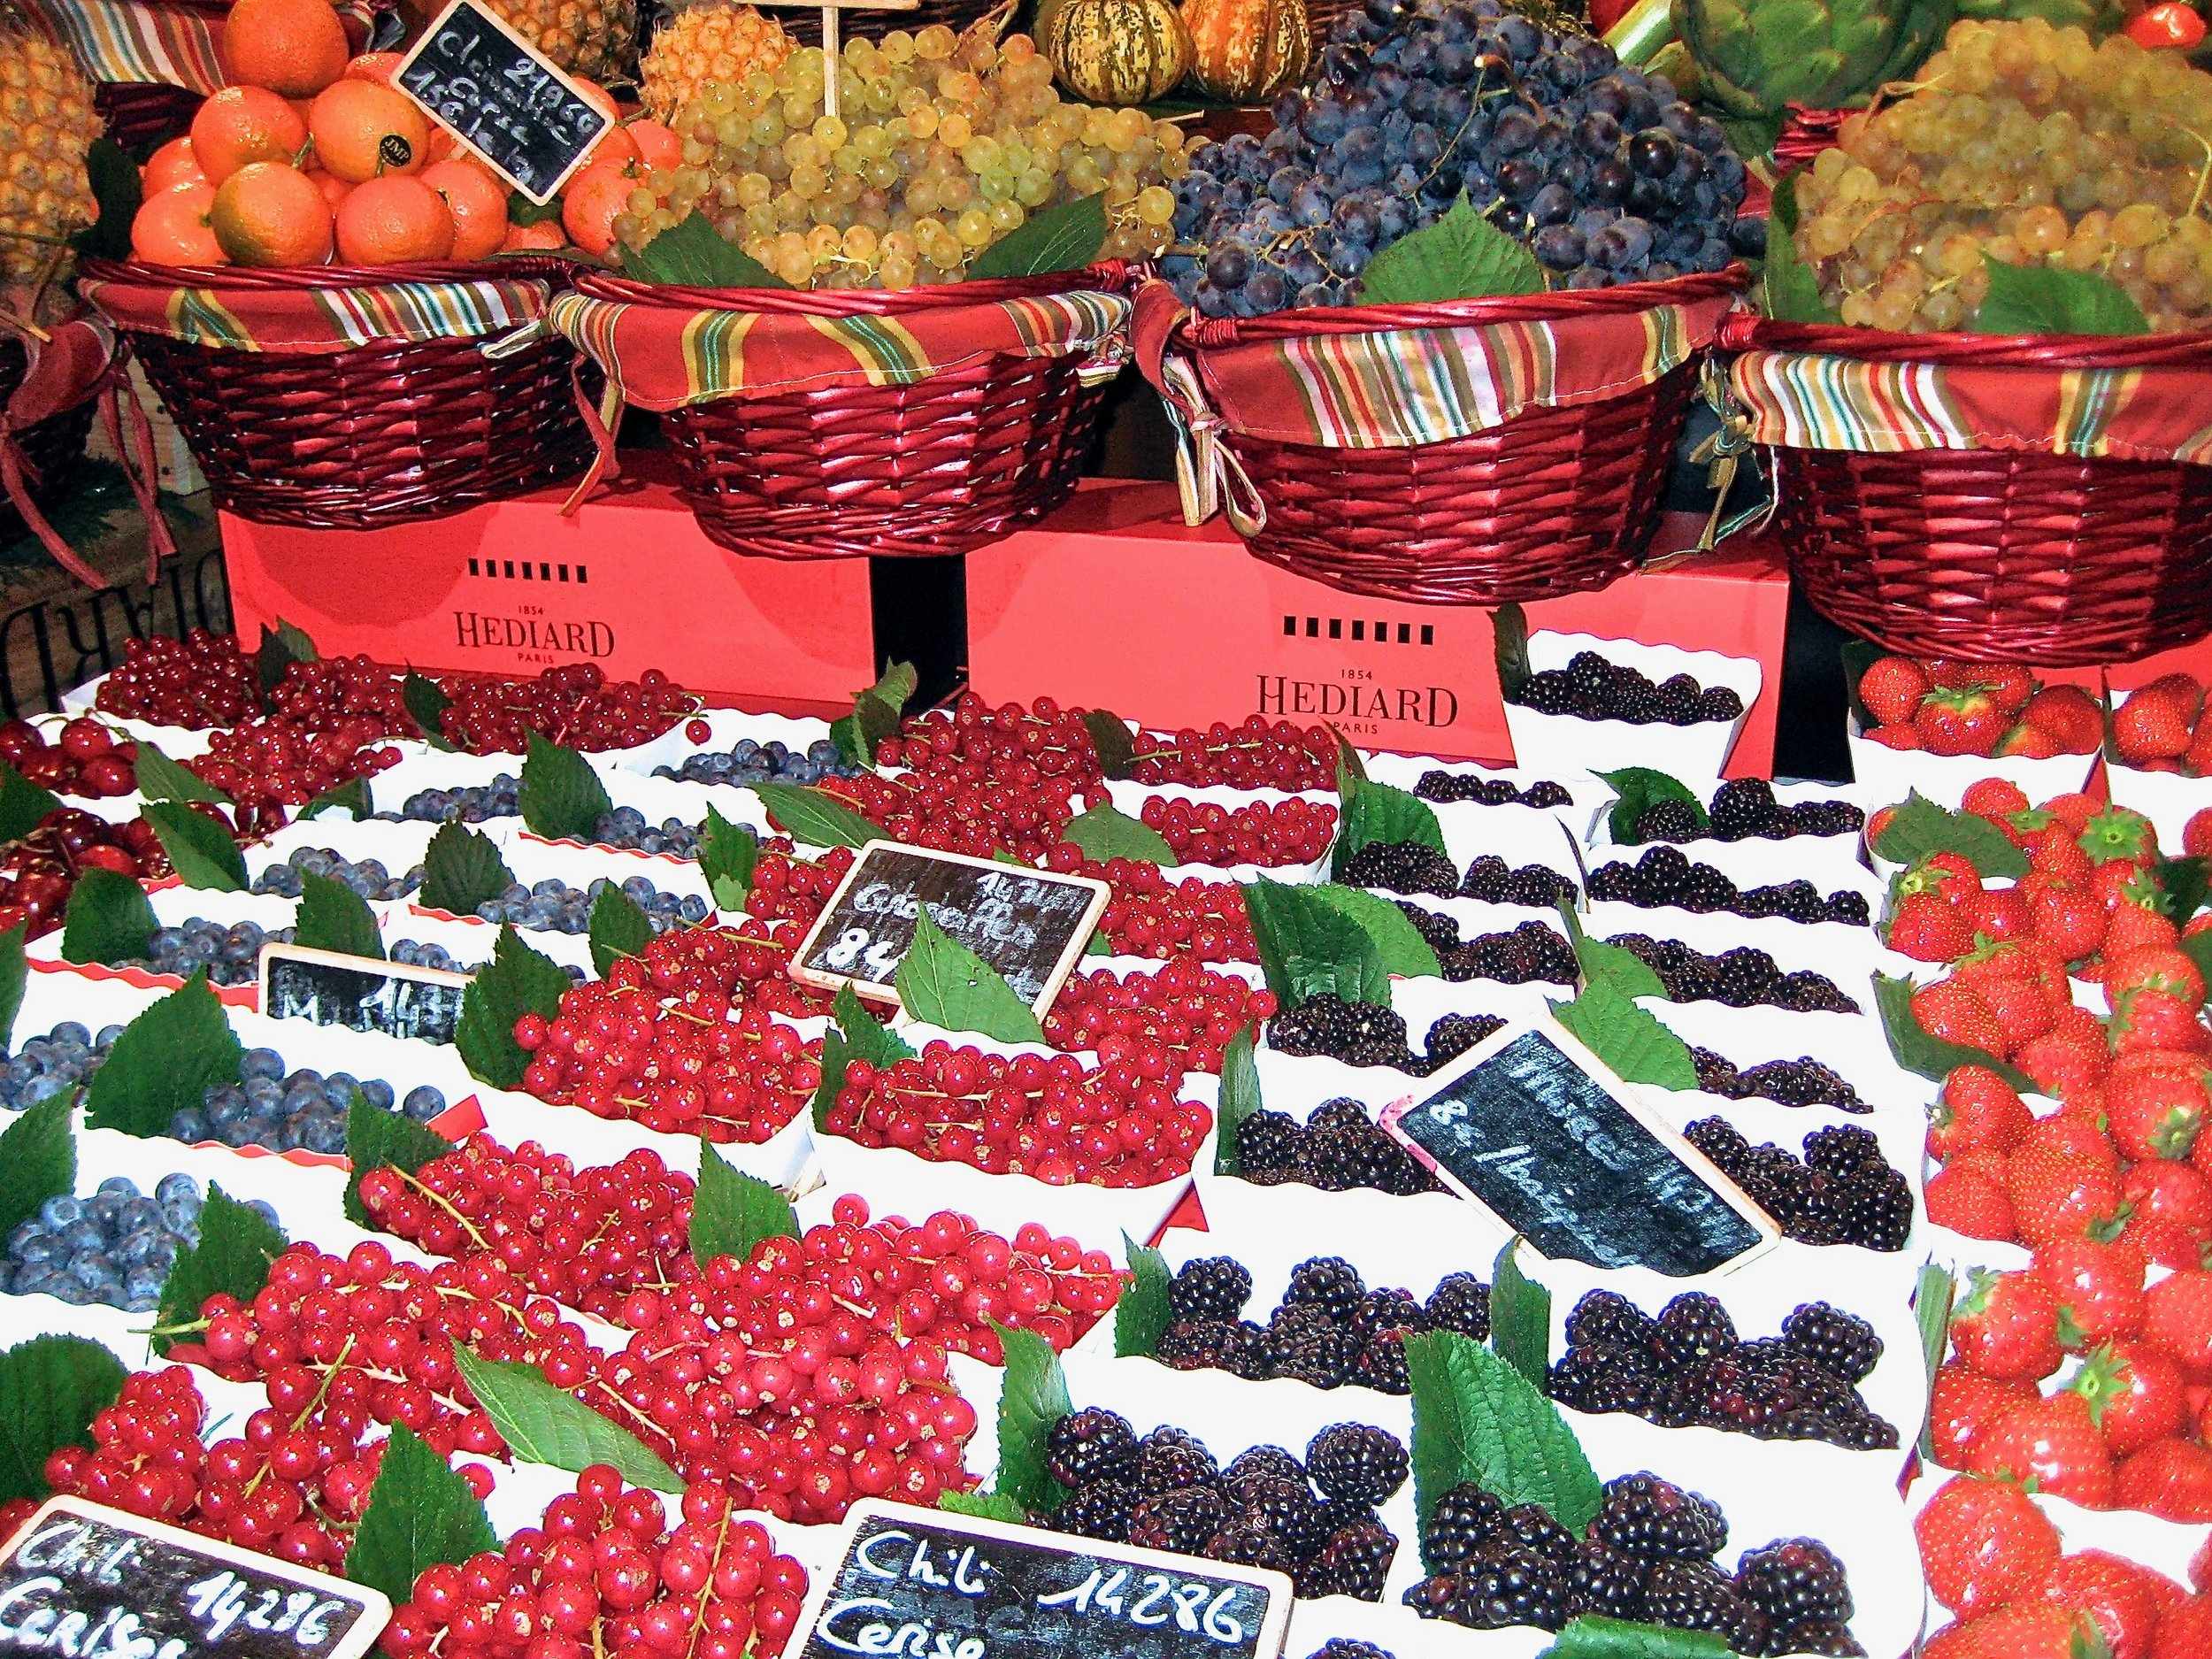 Eat fruit in moderation on a paleo diet. Stick to lower glycemic fruits like berries